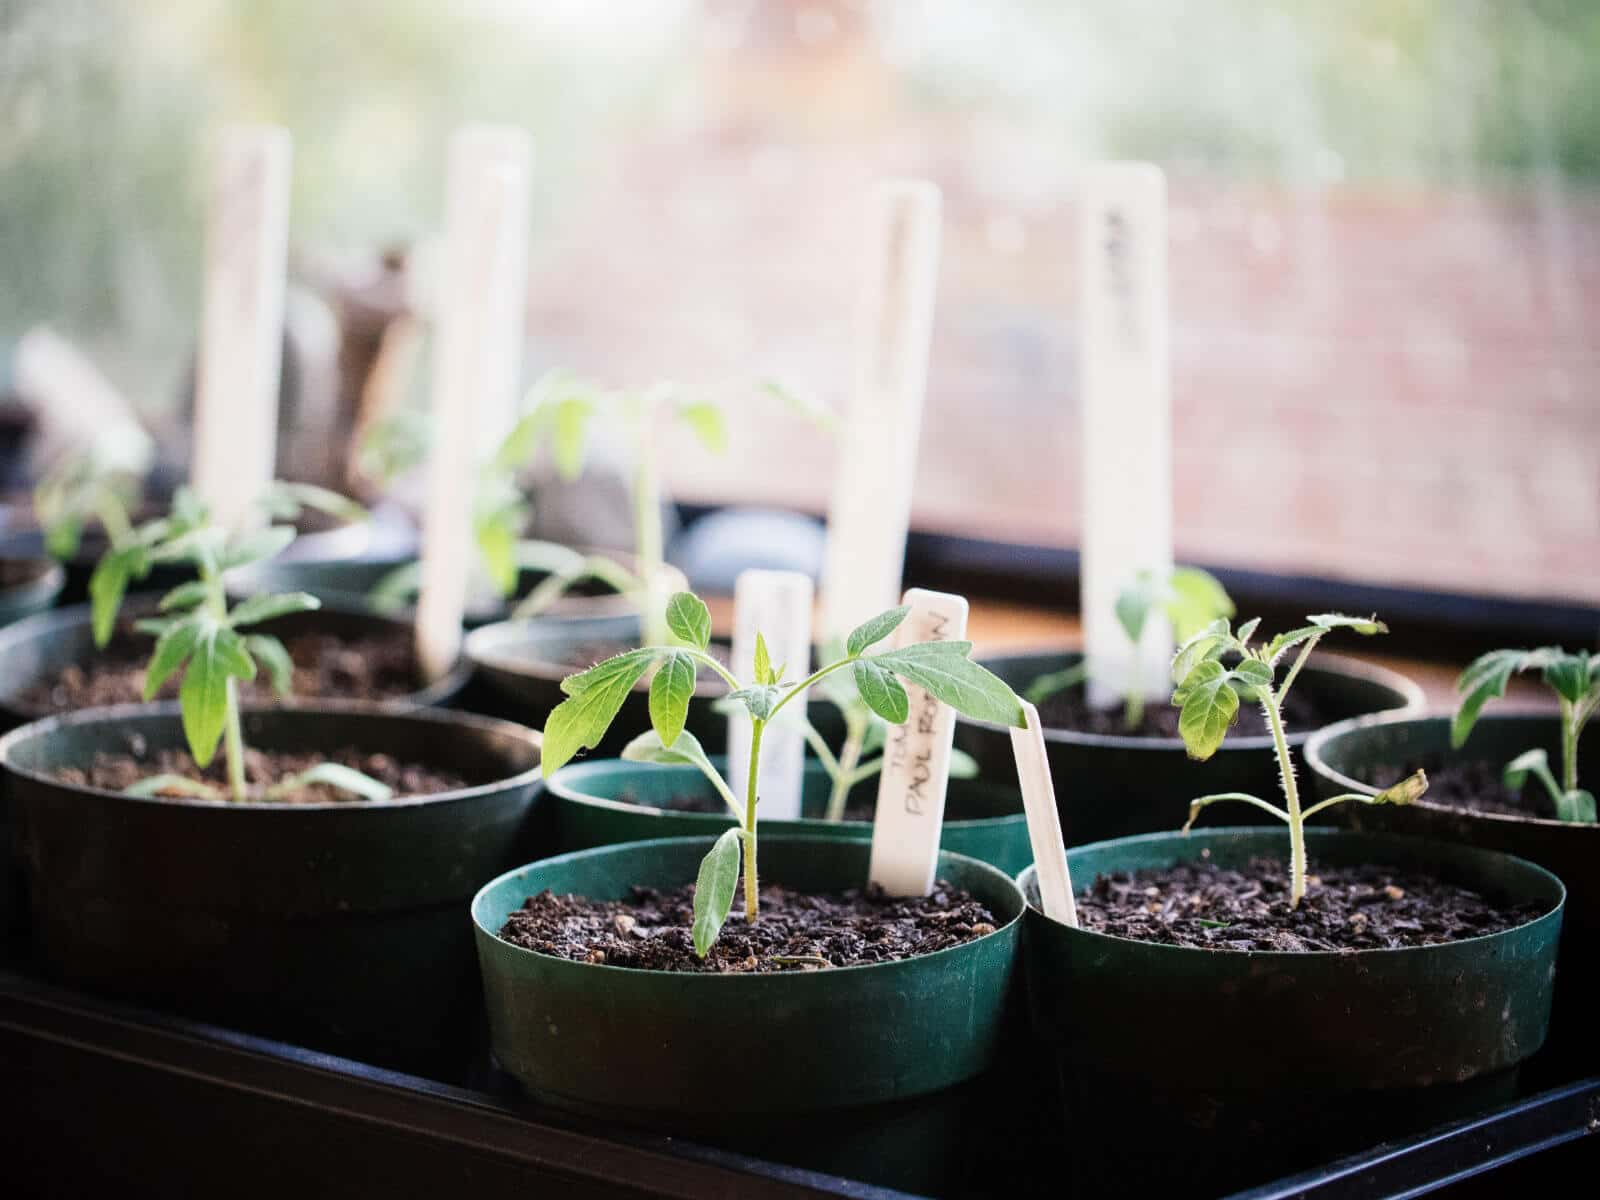 Start your tomato seeds early